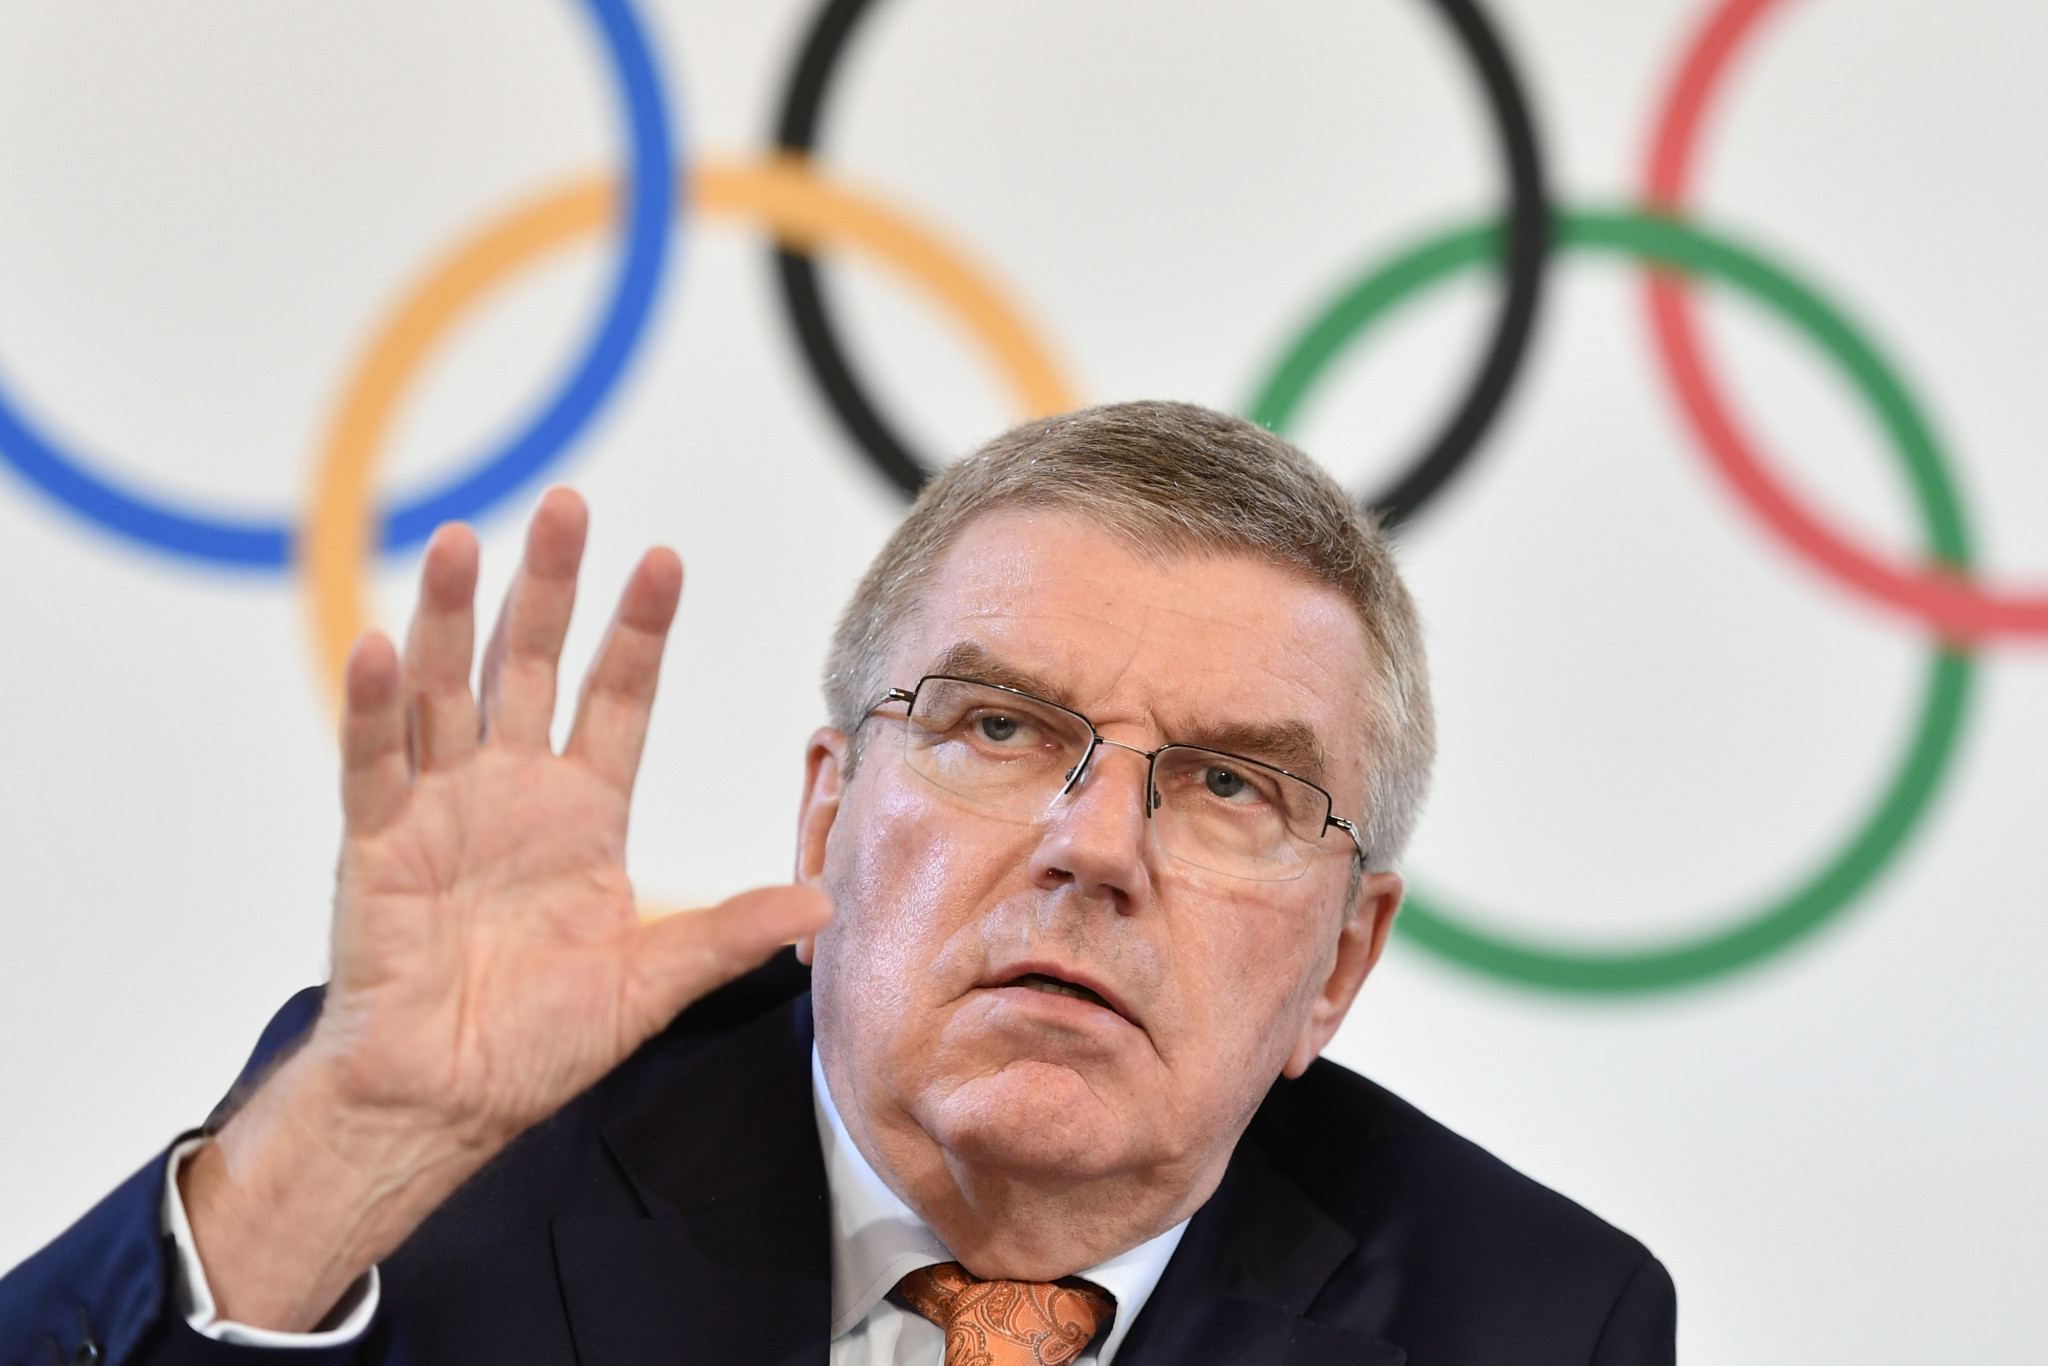 IOC President Thomas Bach insisted the changes would respect the